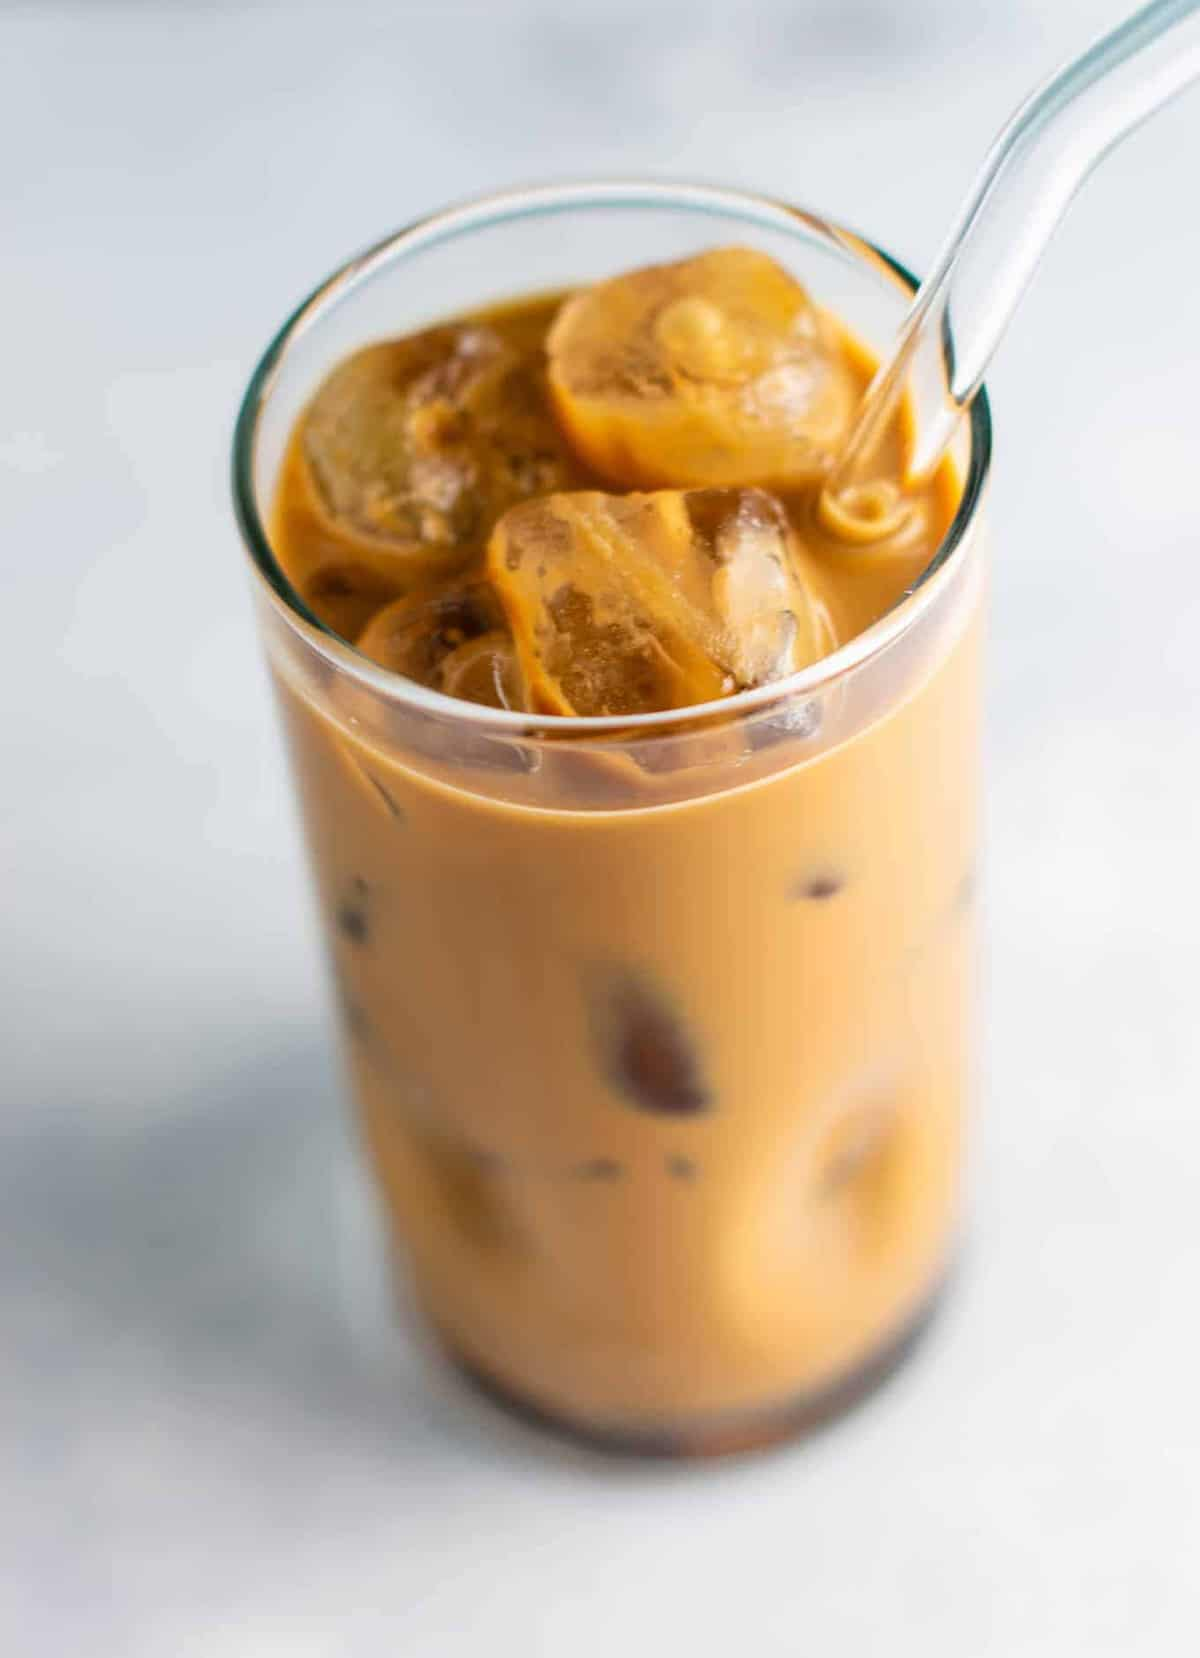 Learn how to make iced coffee at home with these easy delicious tricks!